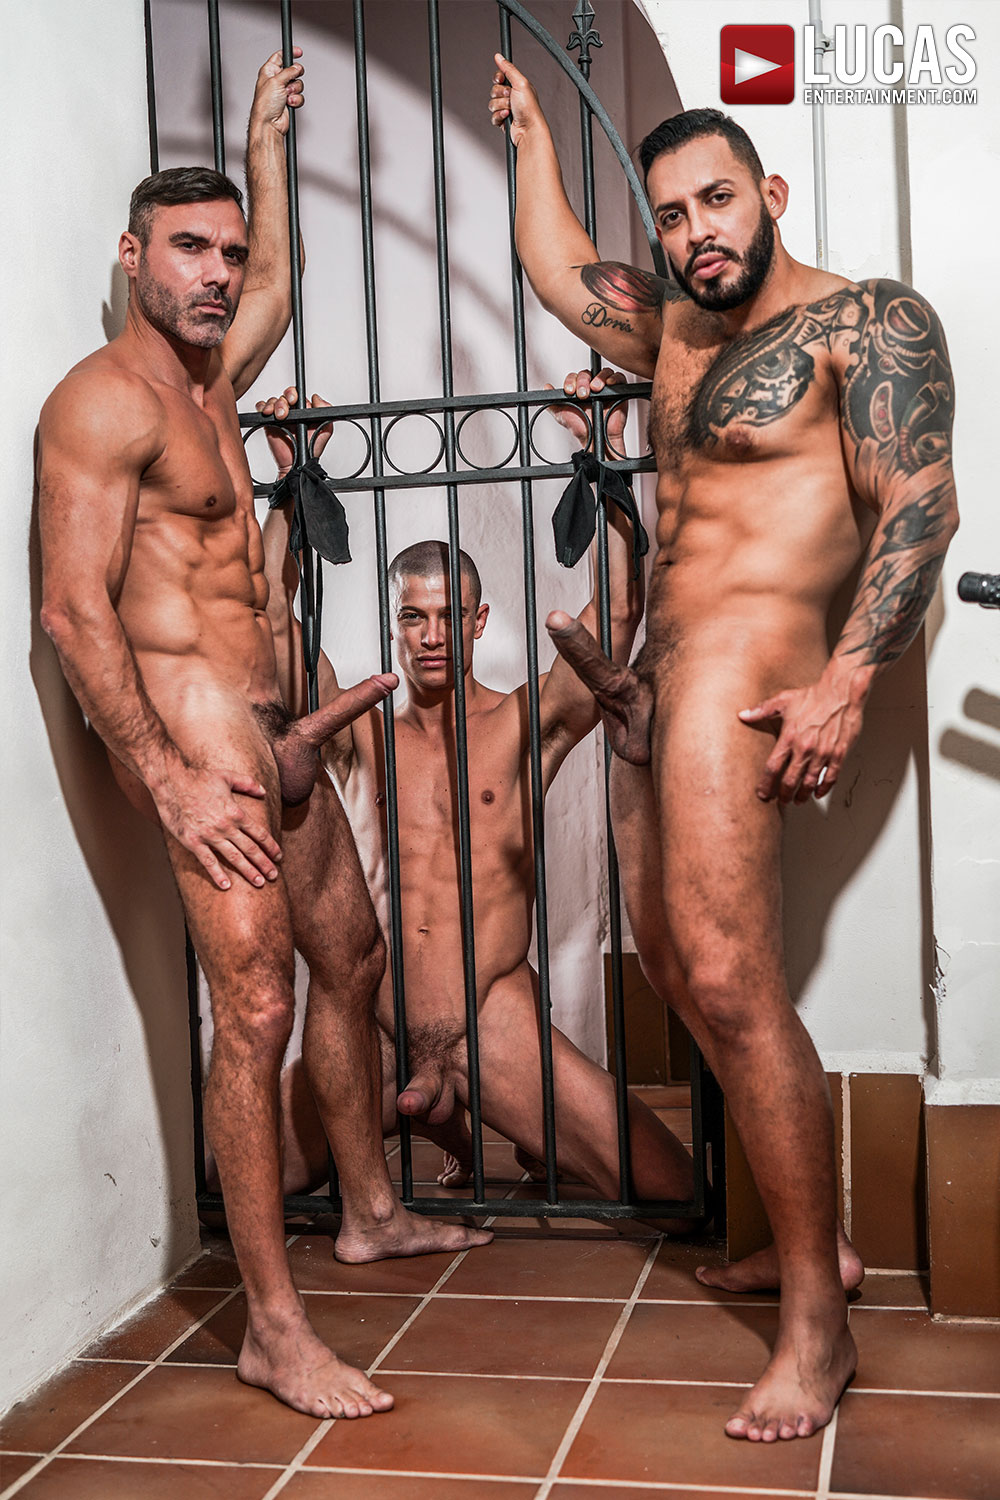 male bdsm Viktor Rom and Manuel Skye